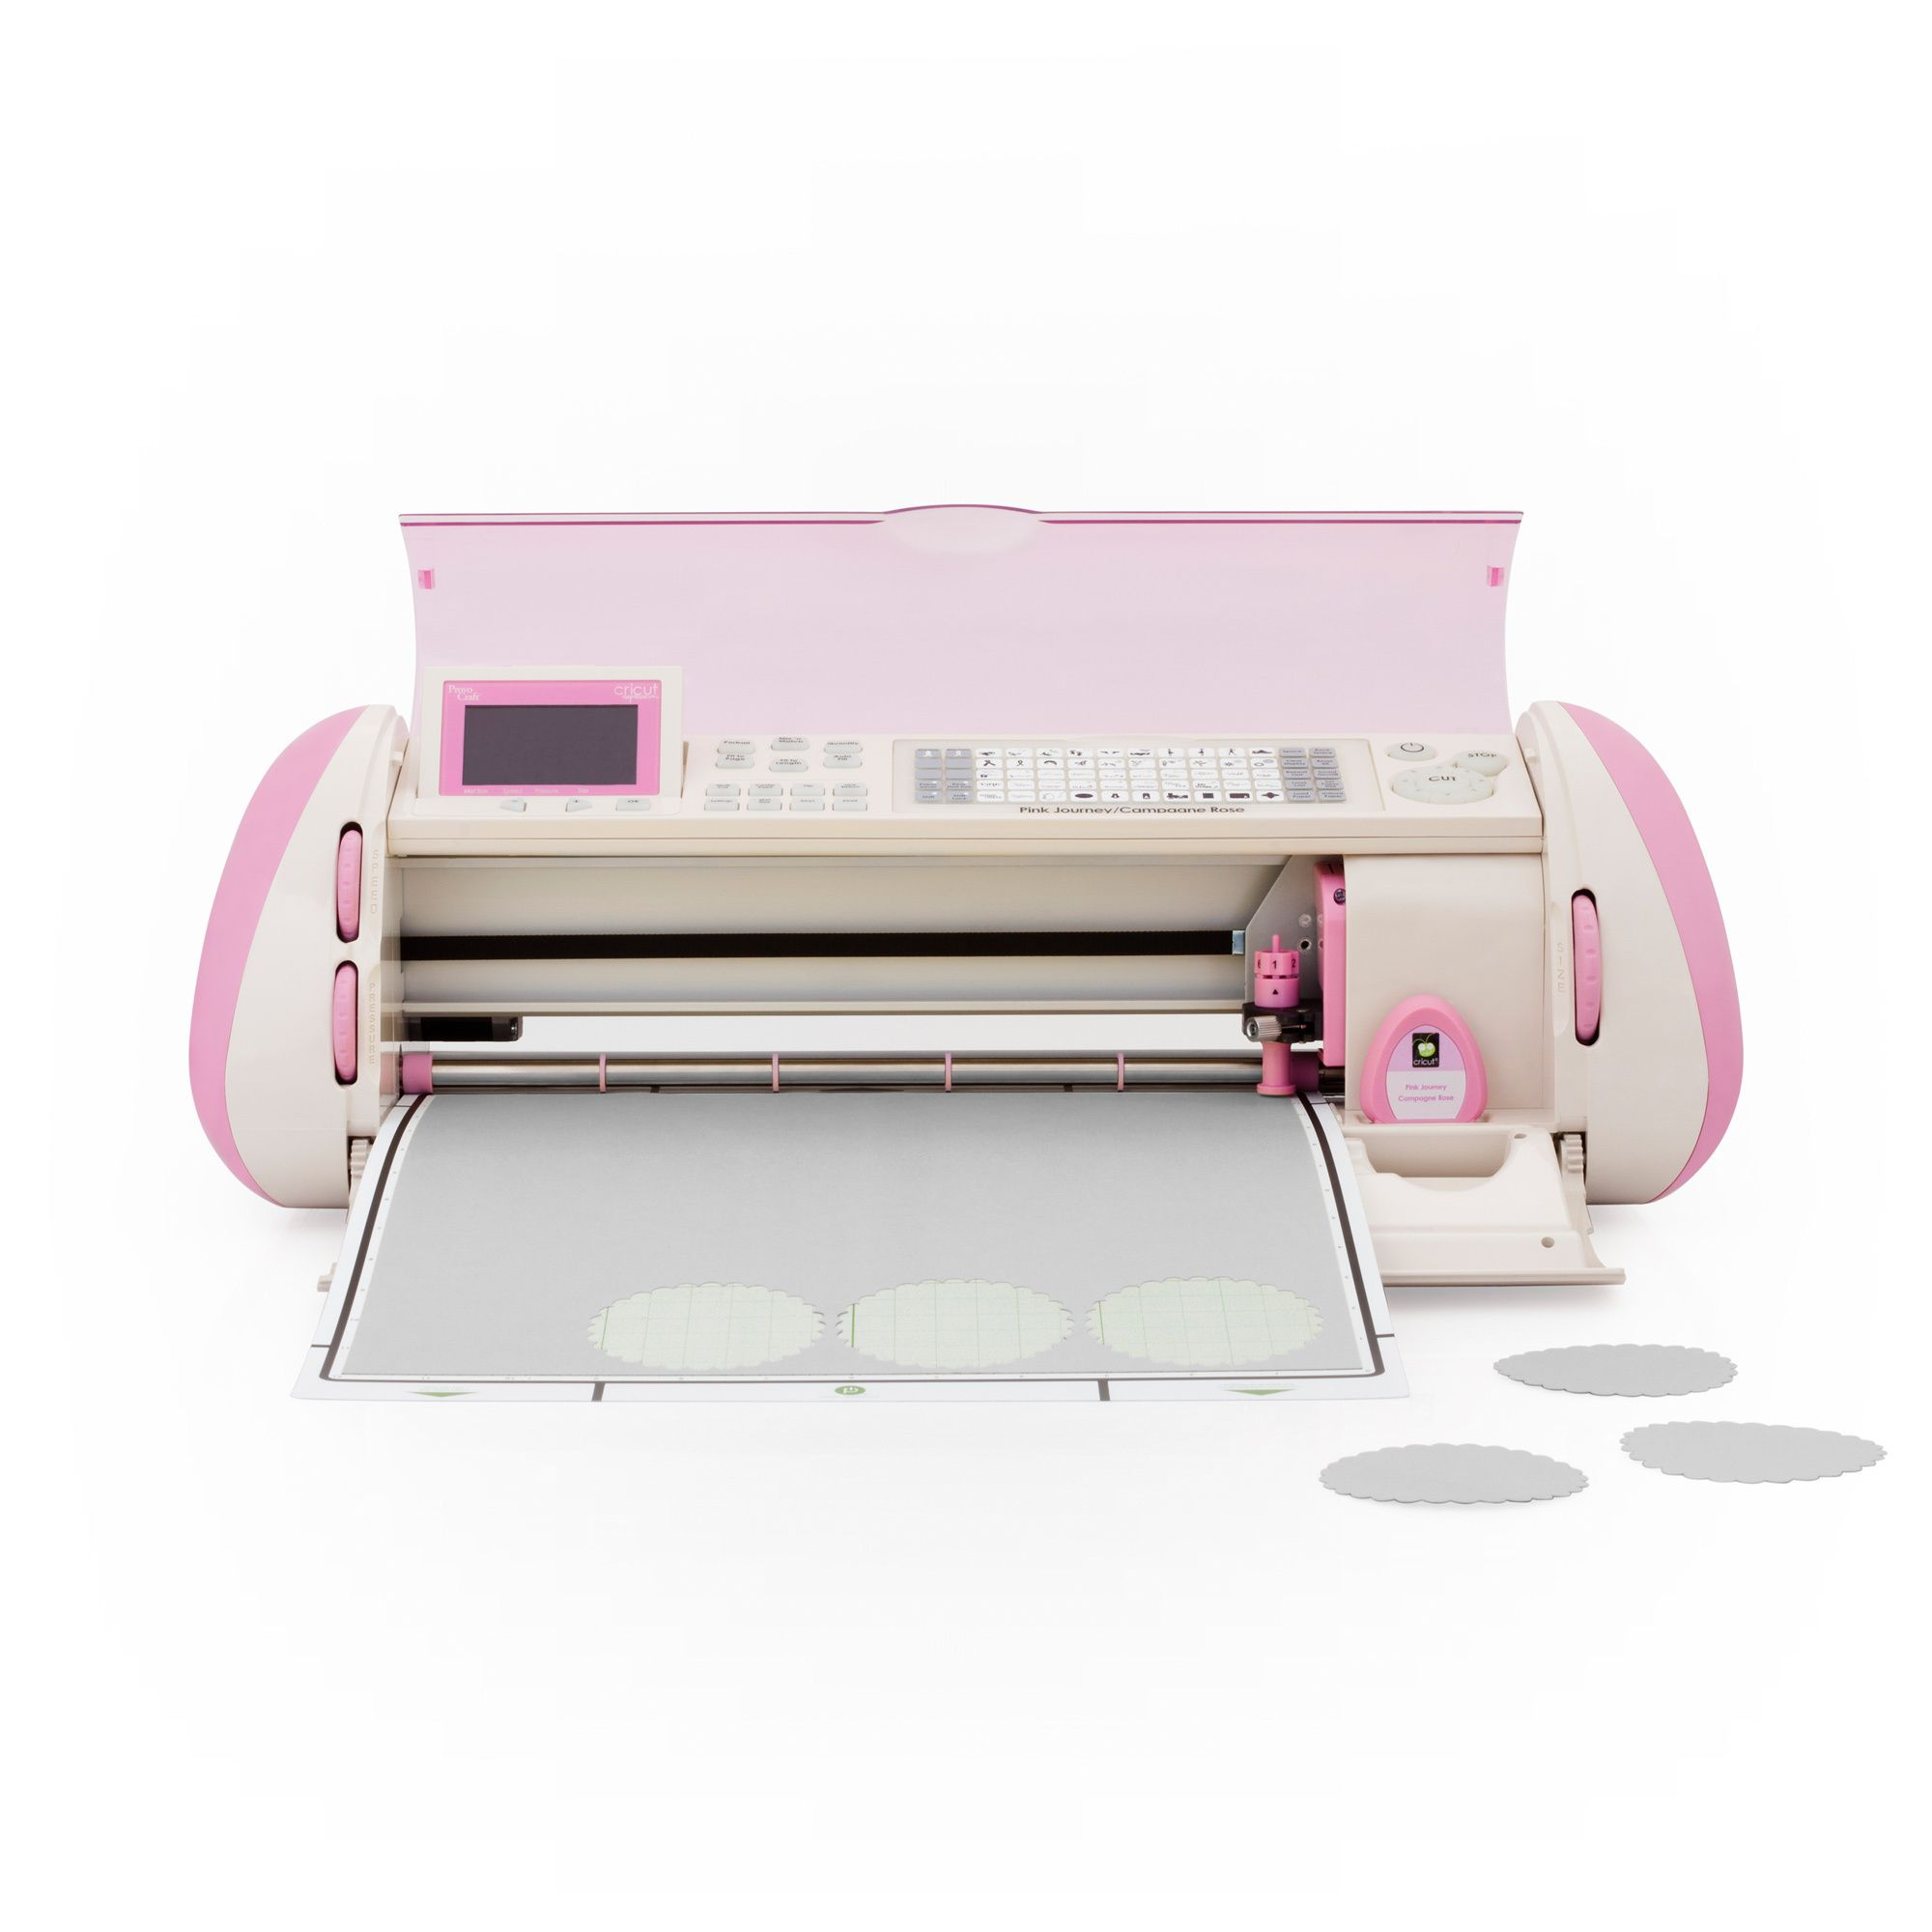 Make The Most Of Your Memories With The Cricut Expression Personal